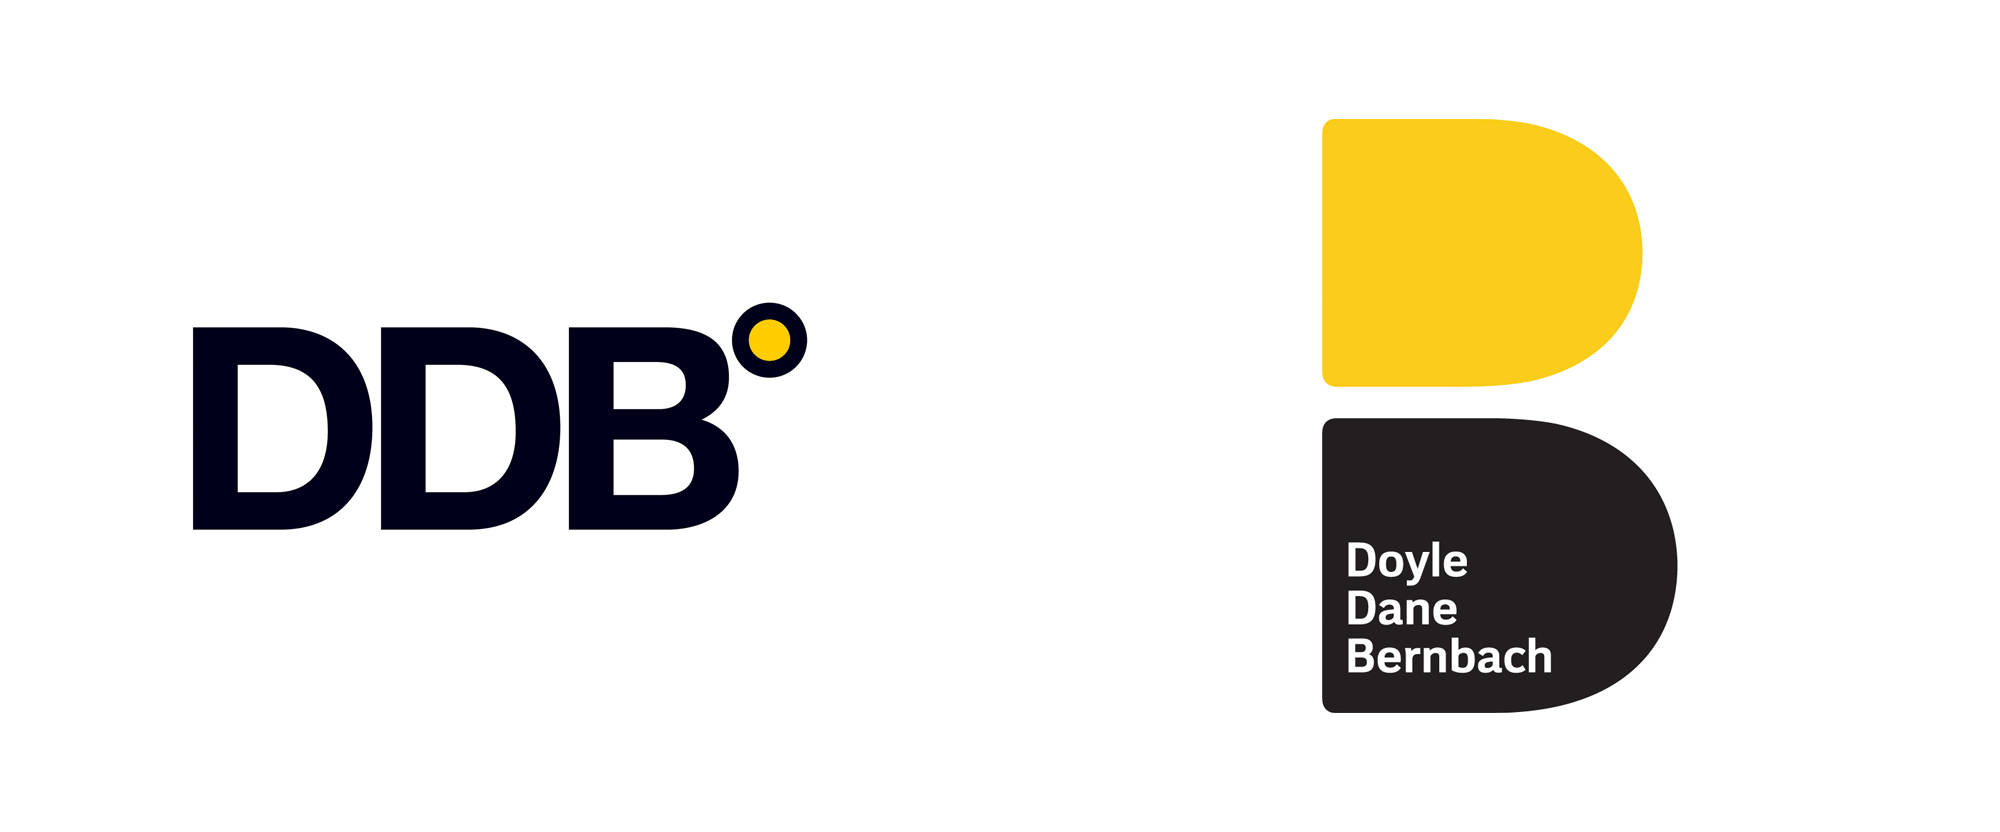 New Logo and Identity for DDB done In-house and with Ian Brignell